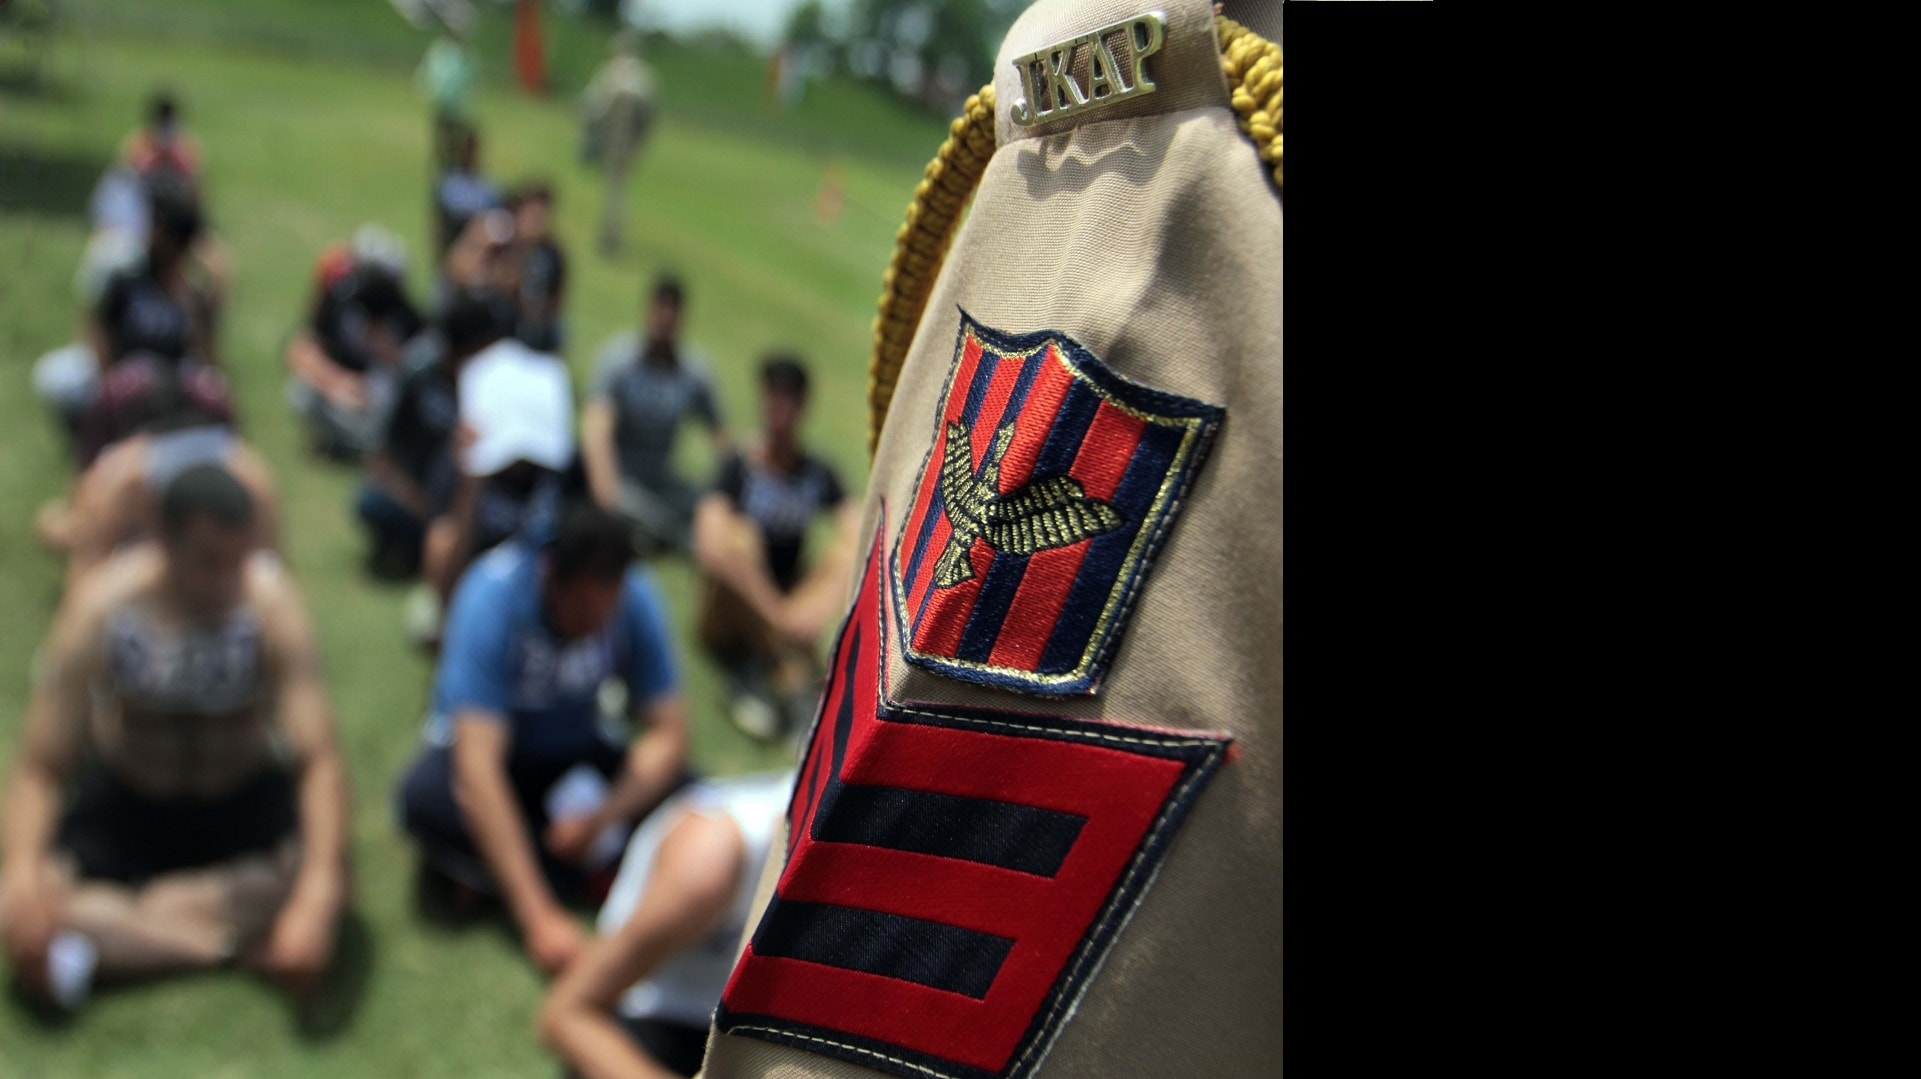 In J&K, a police recruitment drive draws thousands of youths